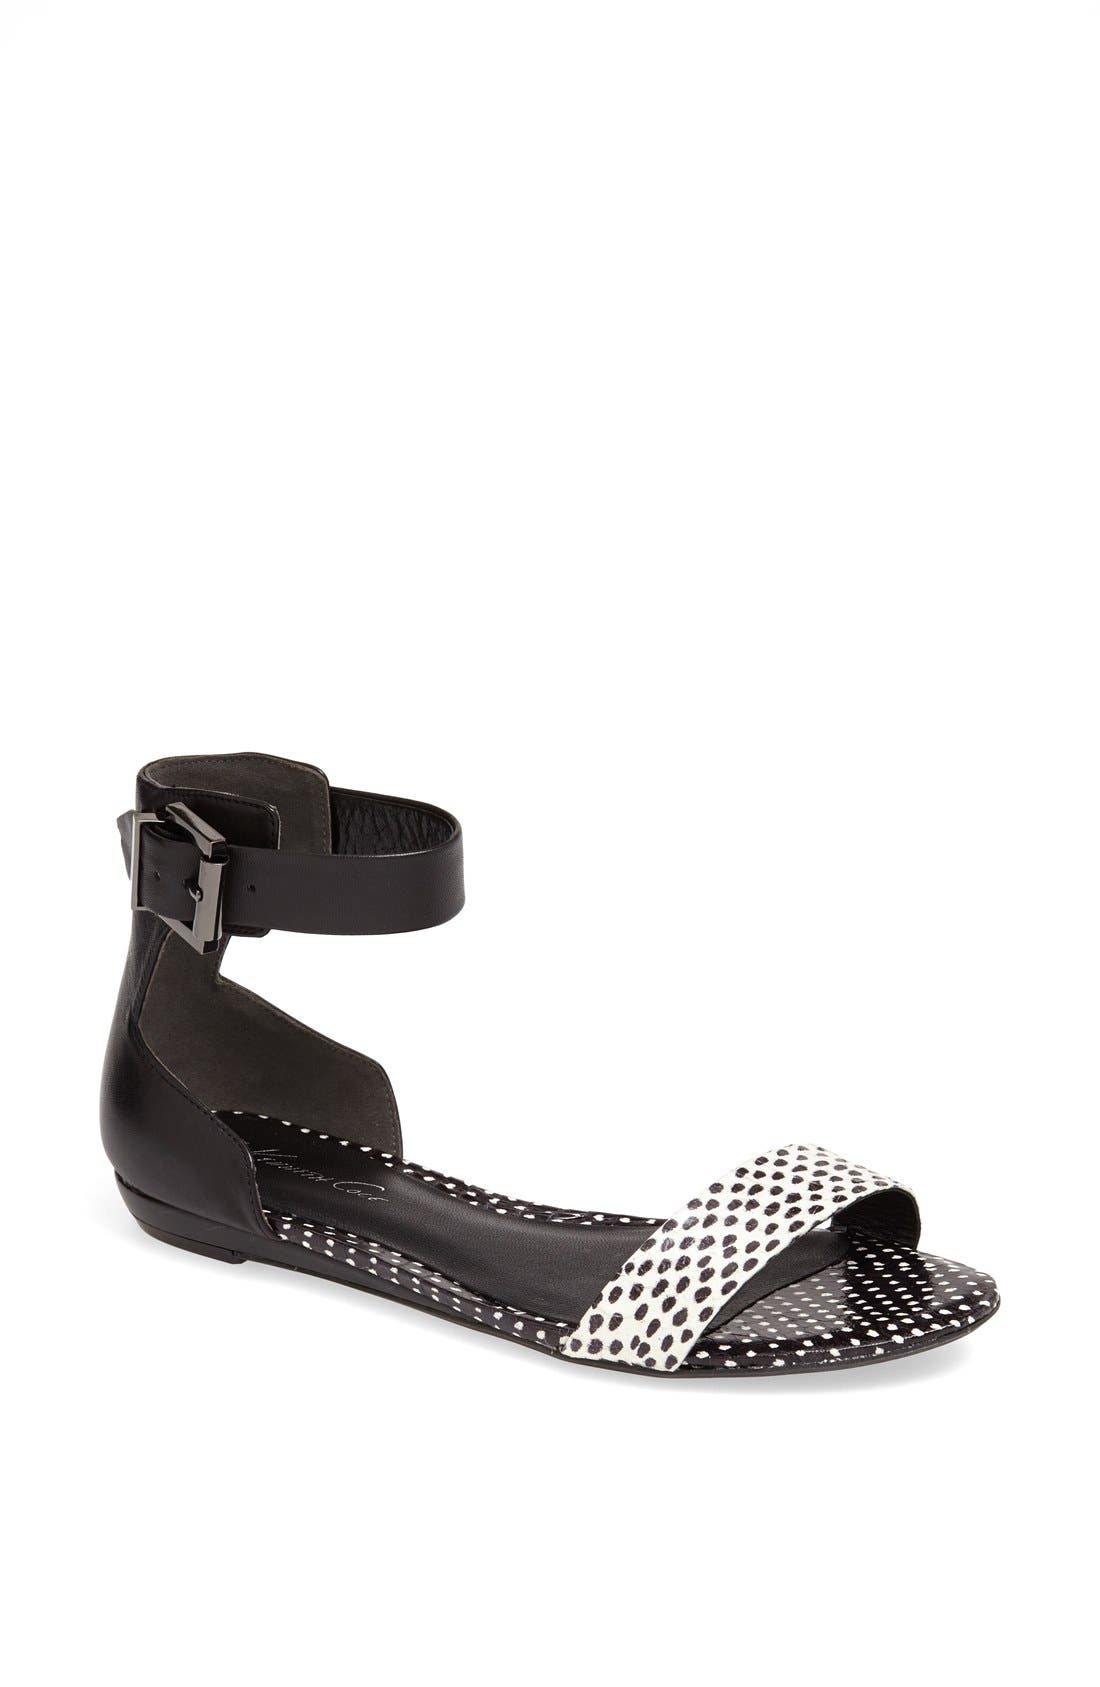 Main Image - Kenneth Cole New York 'Essex' Sandal